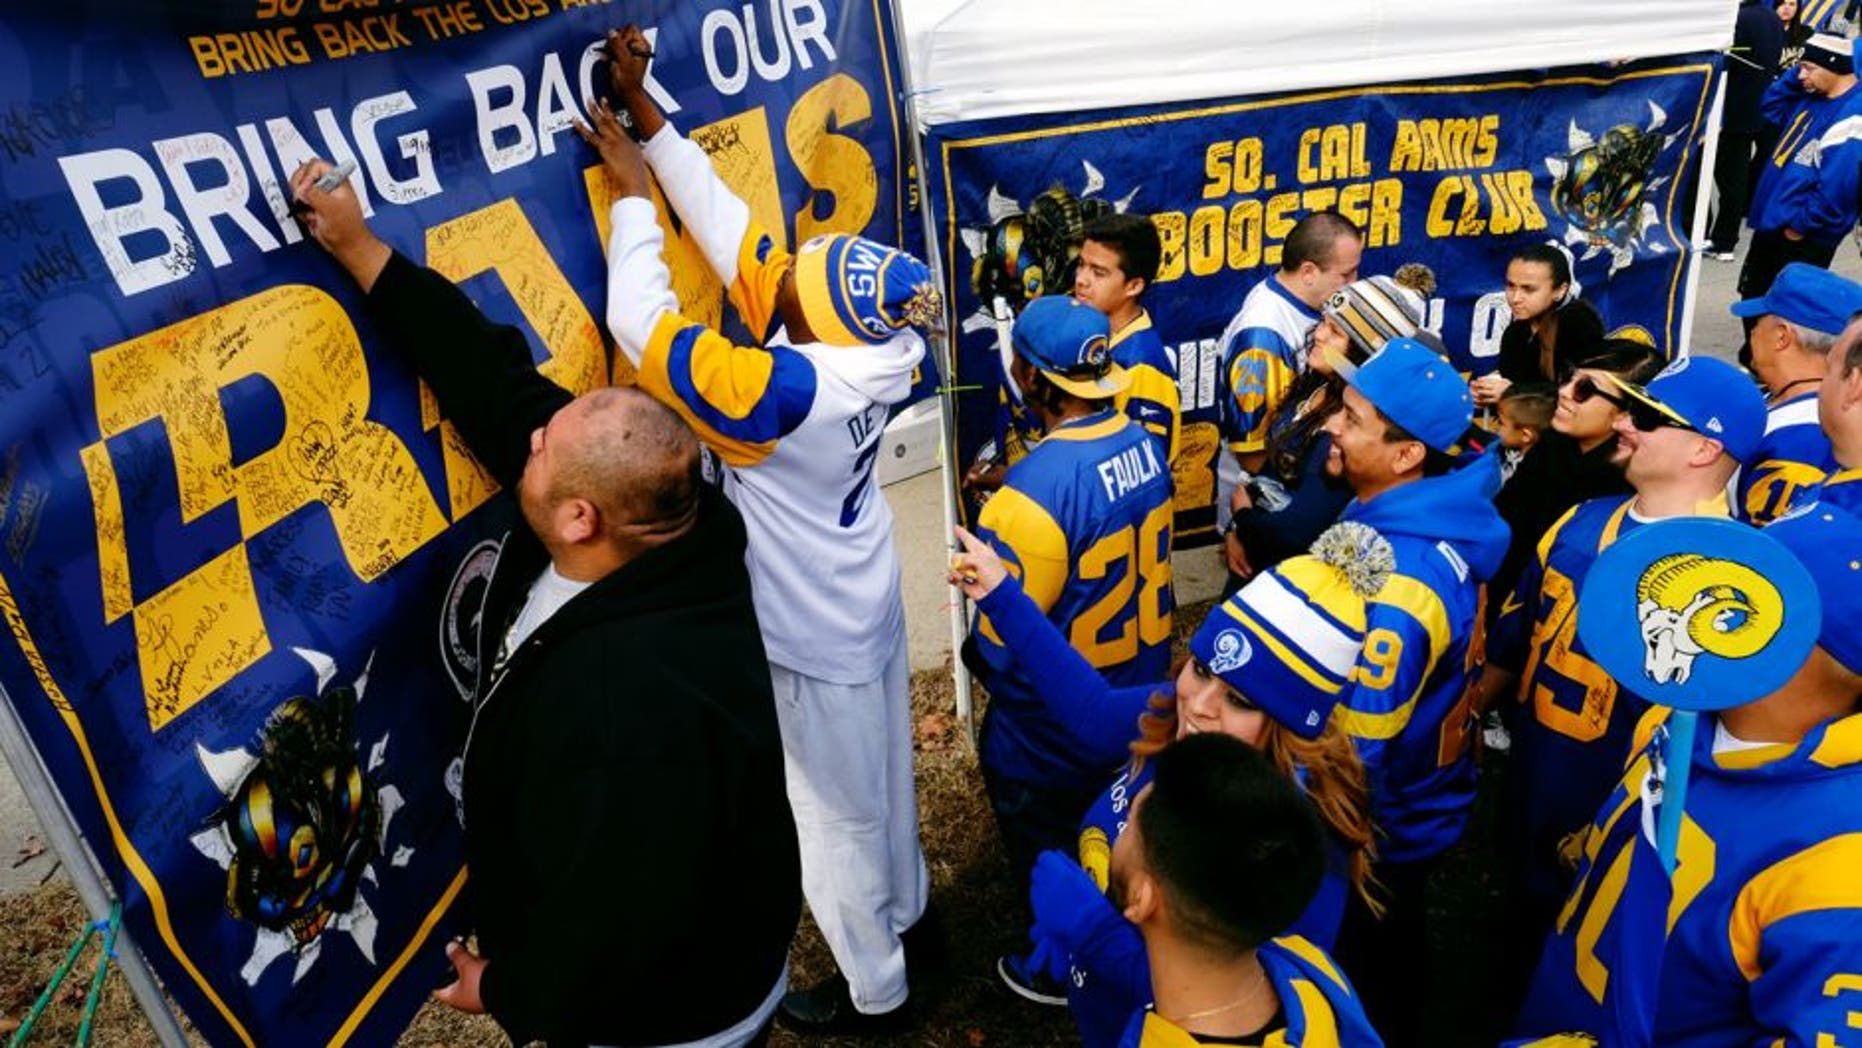 Rams fans sign a banner in support of their team at the historic Los Angeles Memorial Coliseum. Saturday, Jan. 9, 2016 in Los Angeles. Boisterous Los Angeles Rams fans gathered Saturday to herald the NFL football team's possibly imminent return to Southern California after a 21-year sojourn in St. Louis. (AP Photo/Richard Vogel)